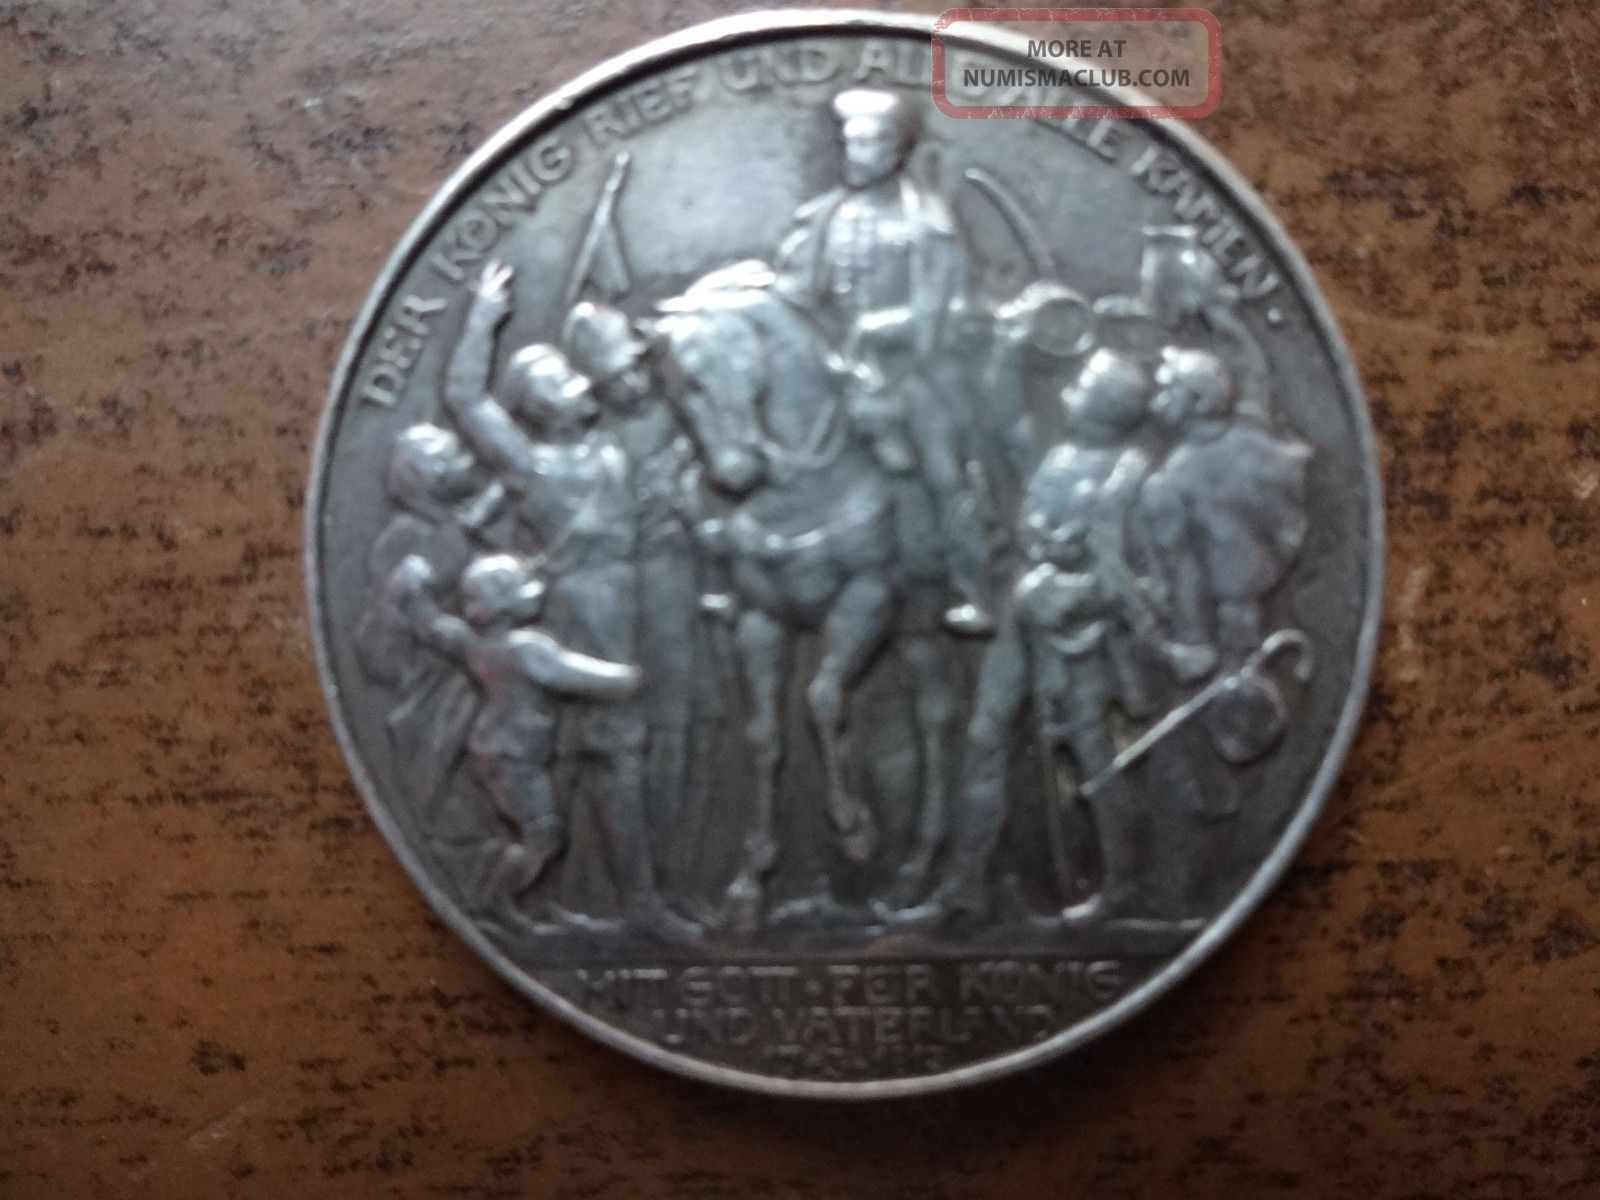 1913 Prussia Deutsches Reich Napoleon Zwei Mark Silver Coin - Revised Other Coins of the World photo